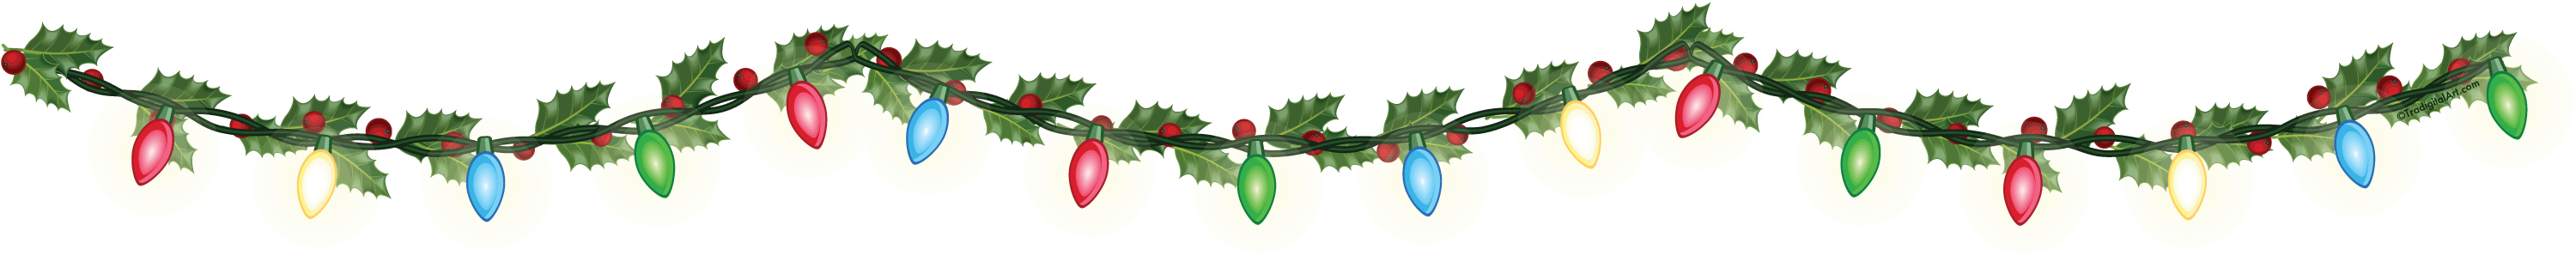 Christmas border .png. Lights png transparent images